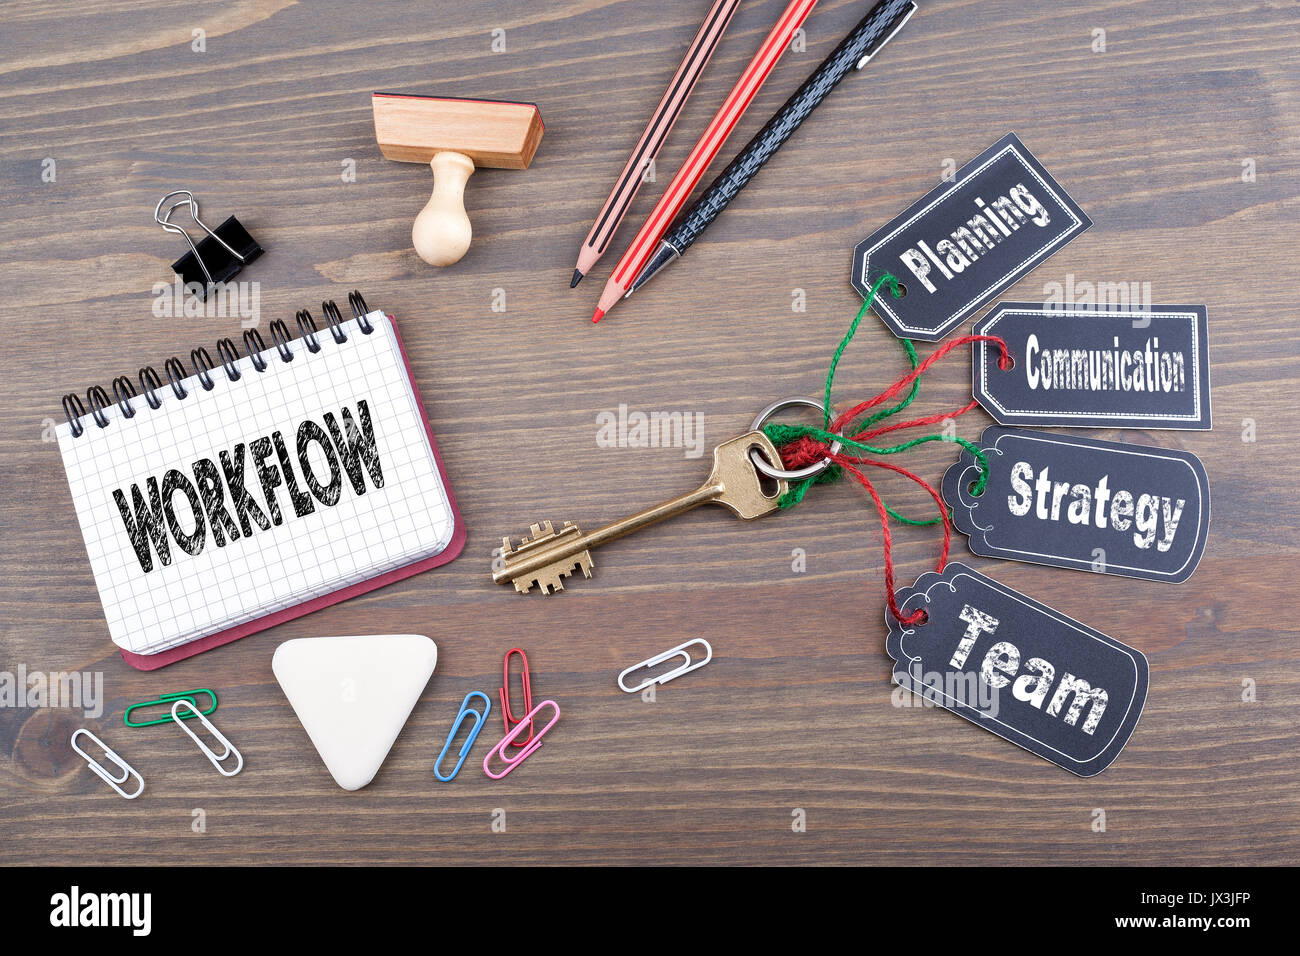 Workflow concept. The key to success on a wooden office desk. - Stock Image